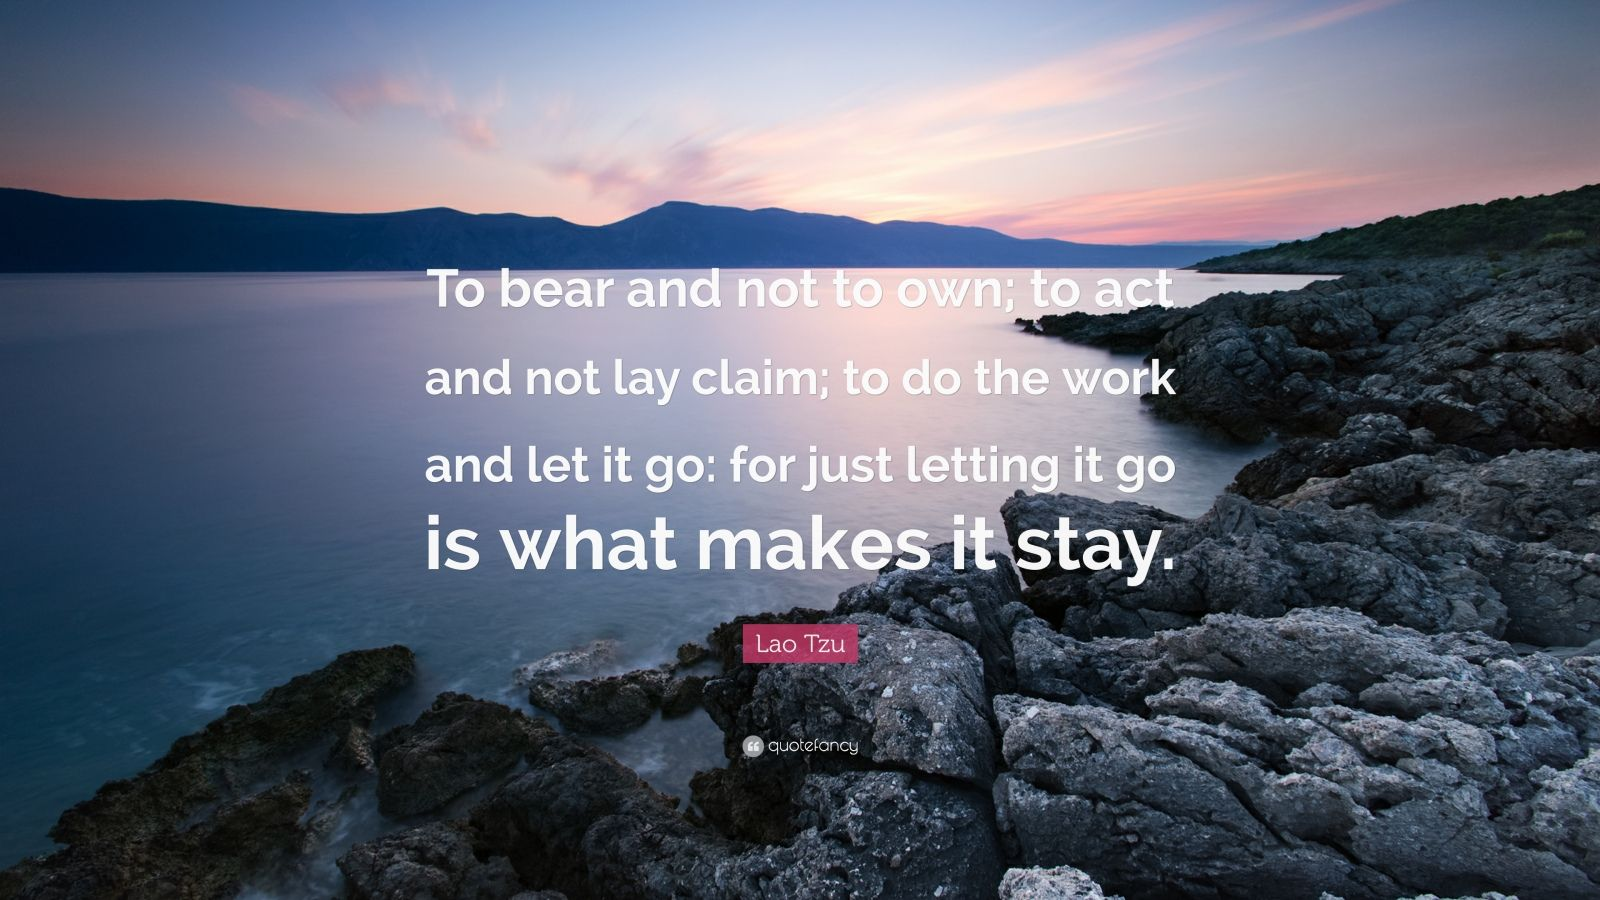 """Lao Tzu Quote: """"To bear and not to own; to act and not lay claim; to do the work and let it go: for just letting it go is what makes it stay."""""""